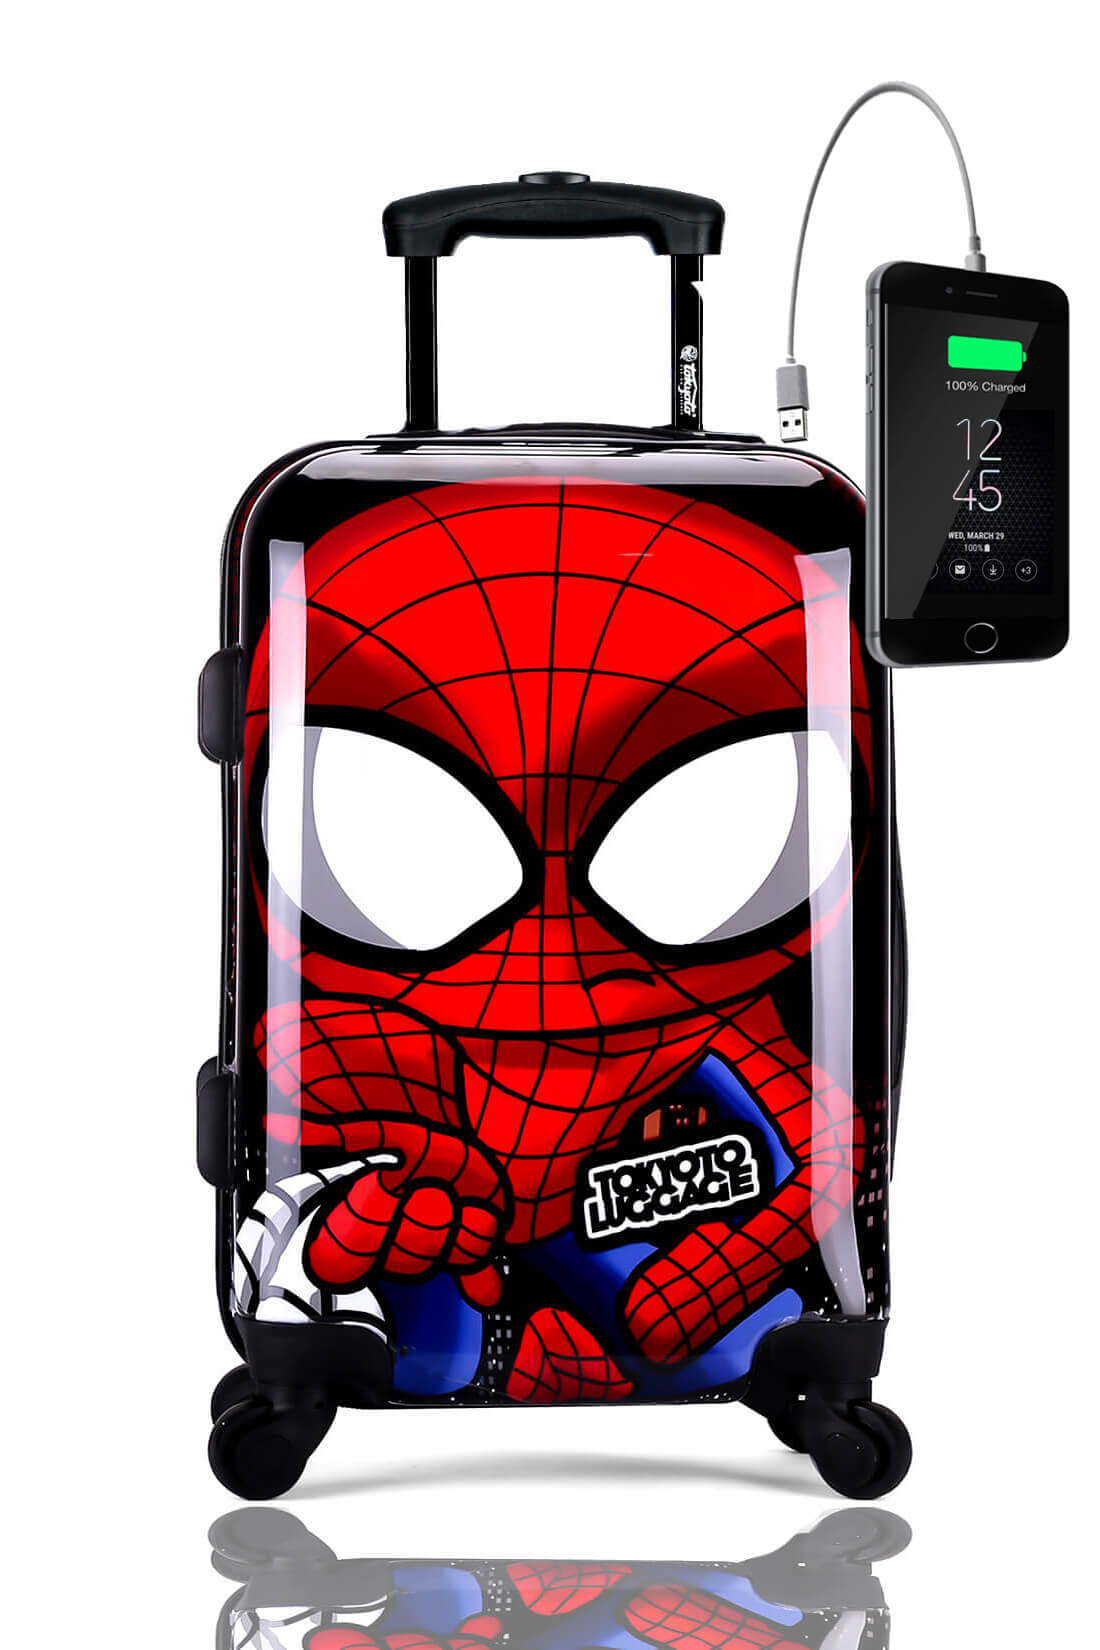 Valise Online Cabine Trolley Enfant TOKYOTO LUGGAGE Modelle SPIDER BOY